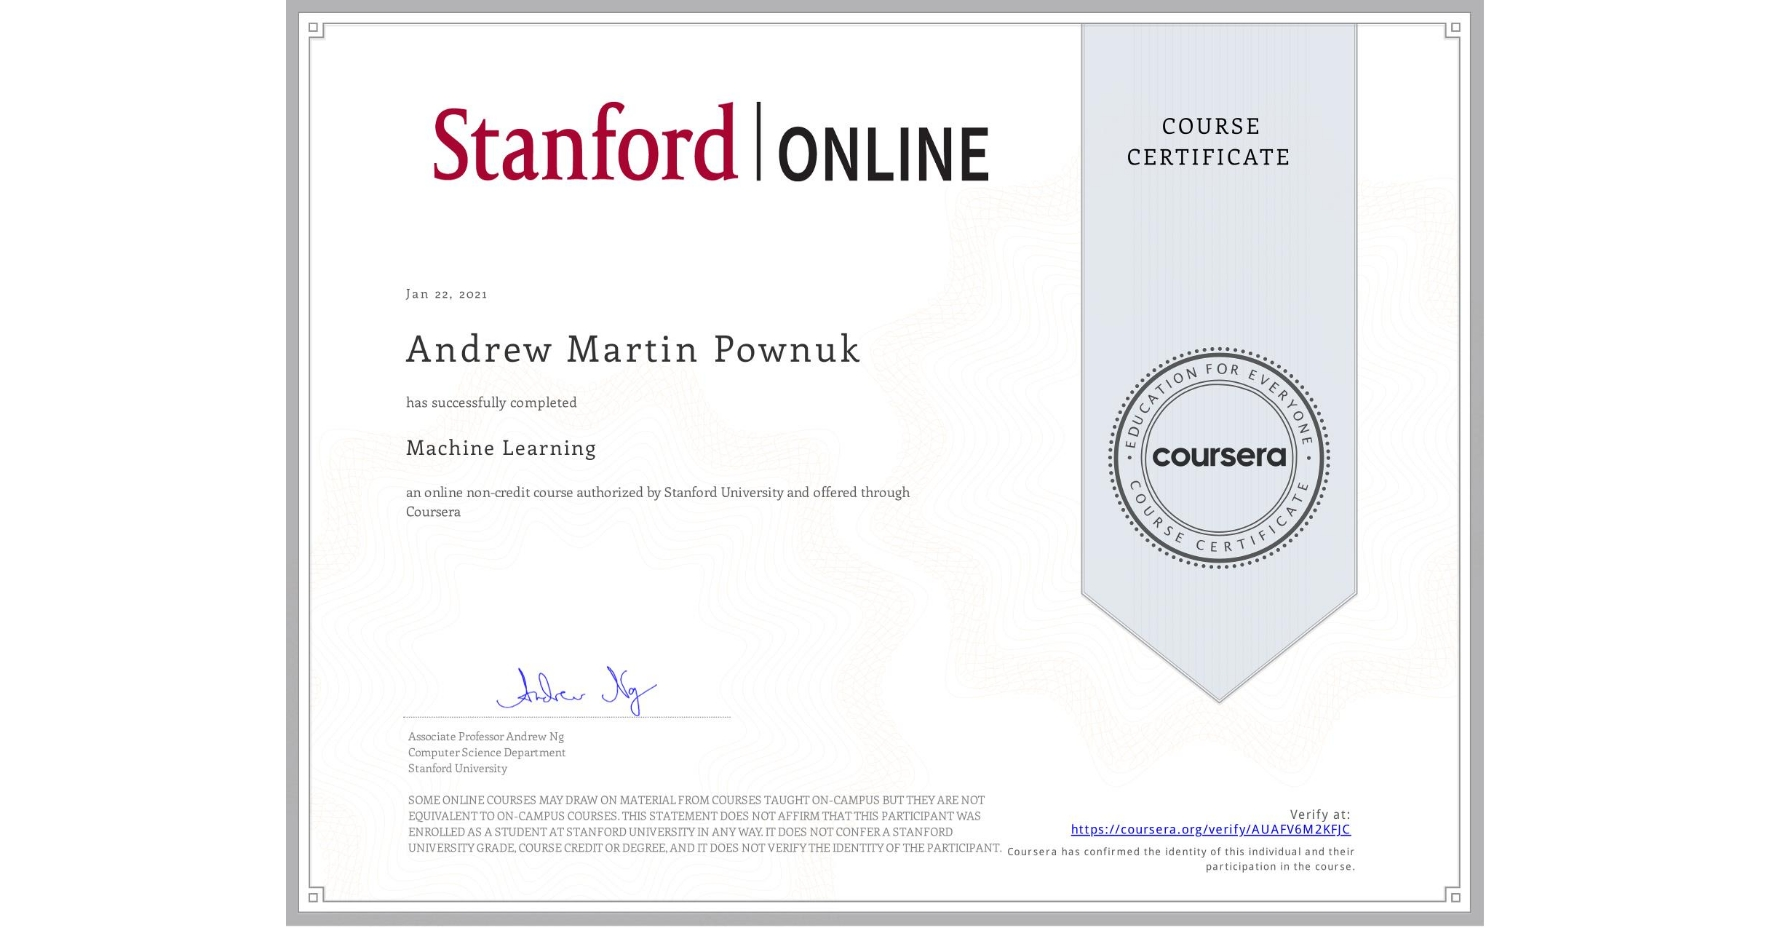 View certificate for Andrew Martin Pownuk, Machine Learning, an online non-credit course authorized by Stanford University and offered through Coursera